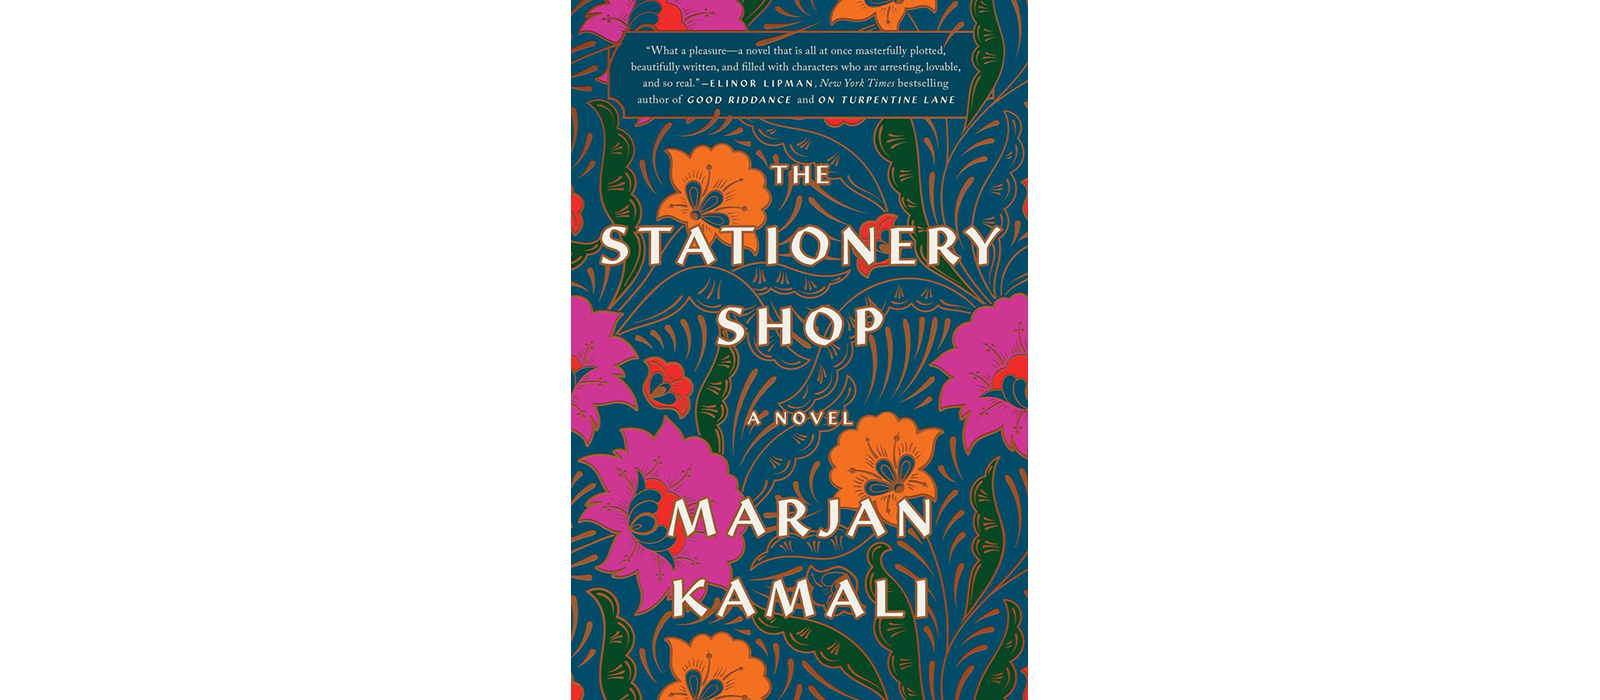 The Stationery Shop, by Marjan Kamali